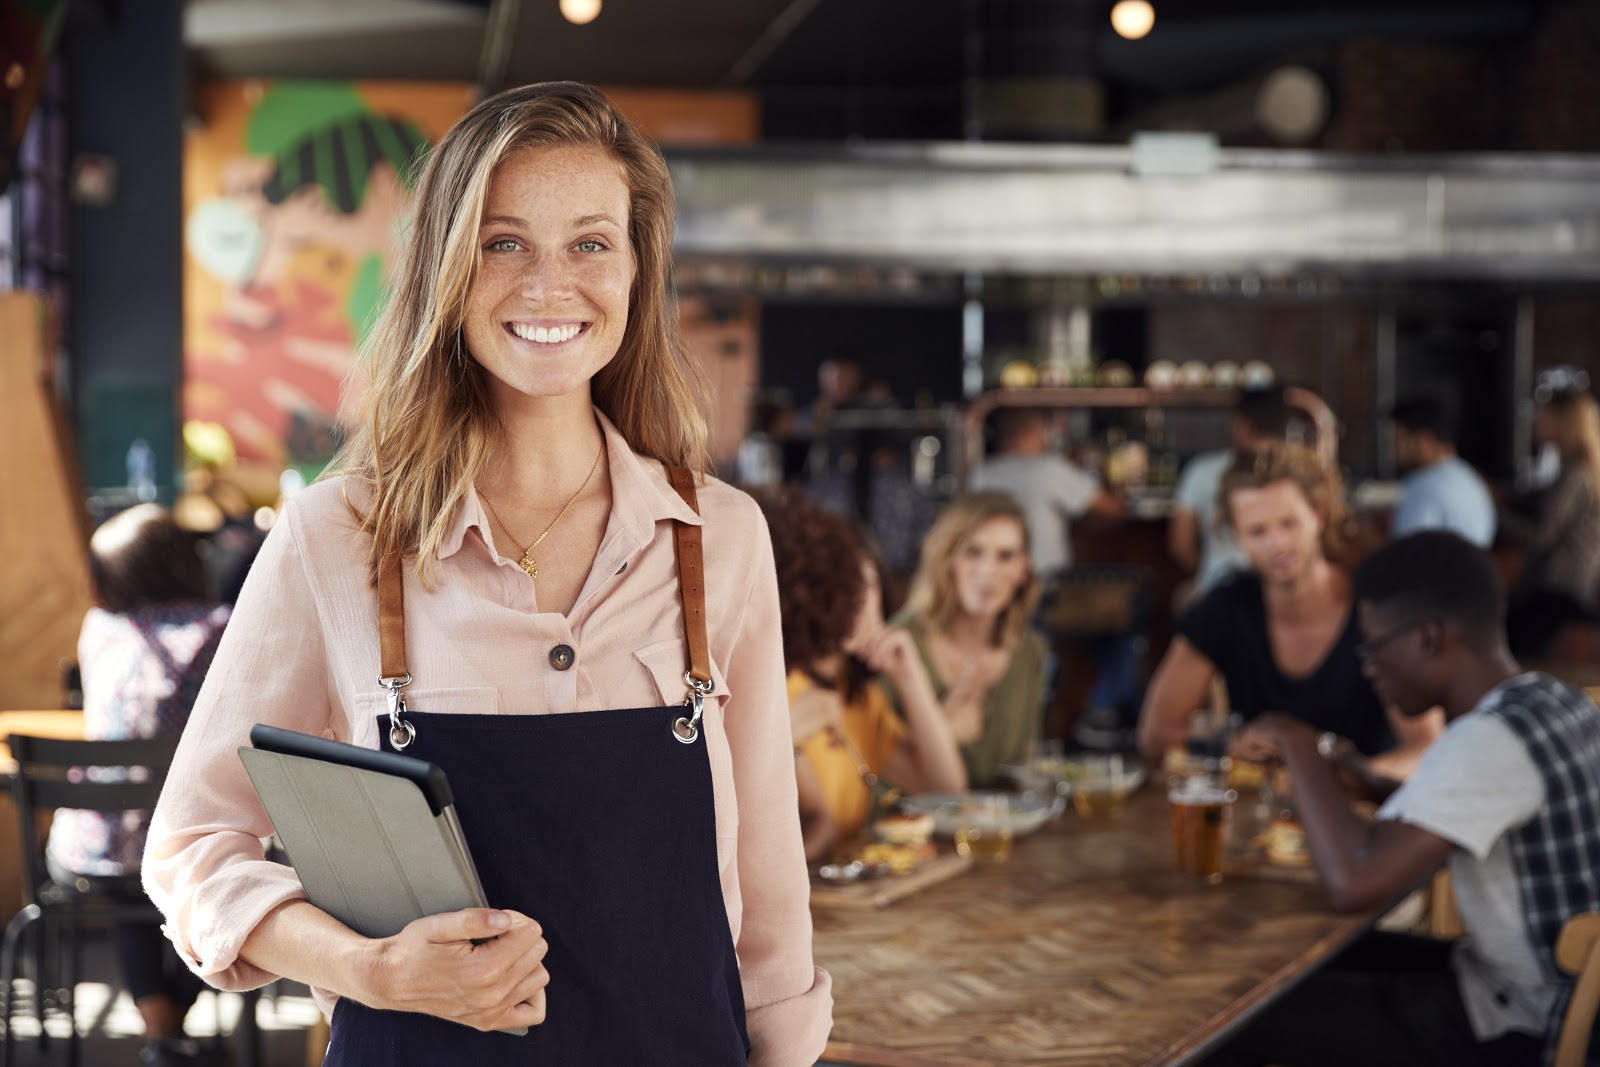 Server stands in restaurant holding iPad smiling at camera